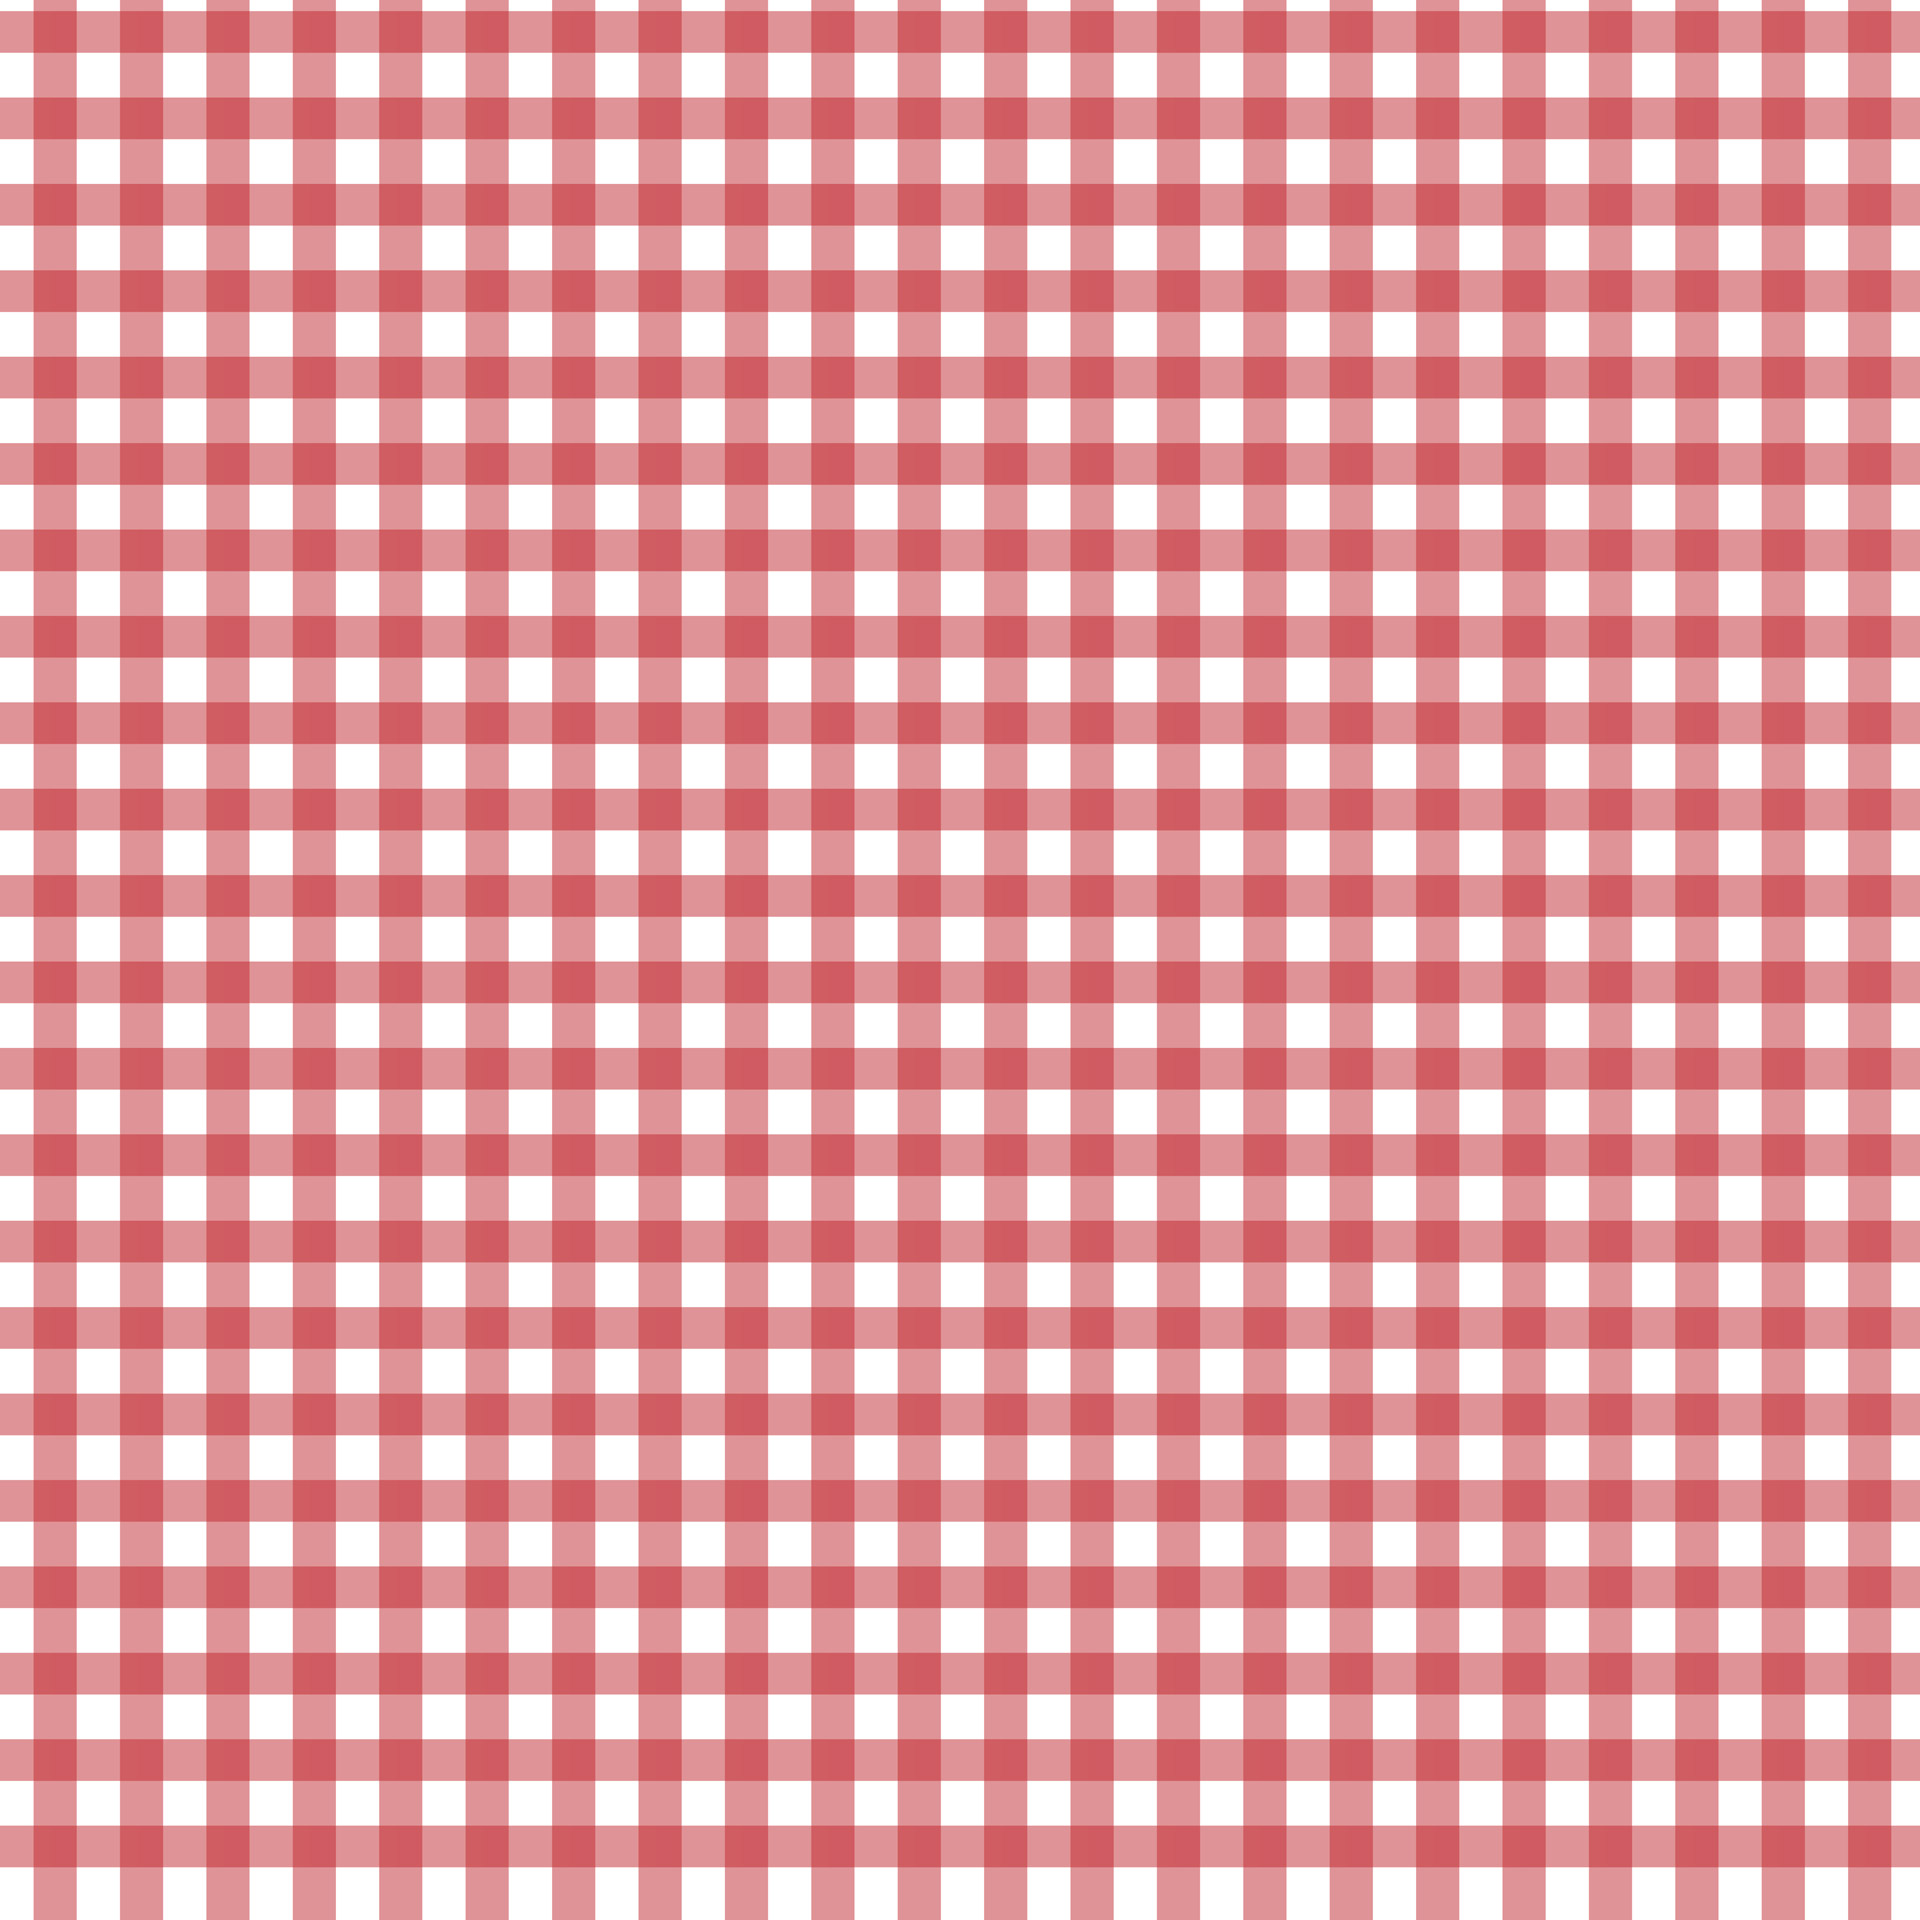 Red Check Background Pattern Free Stock Photo - Public Domain Pictures